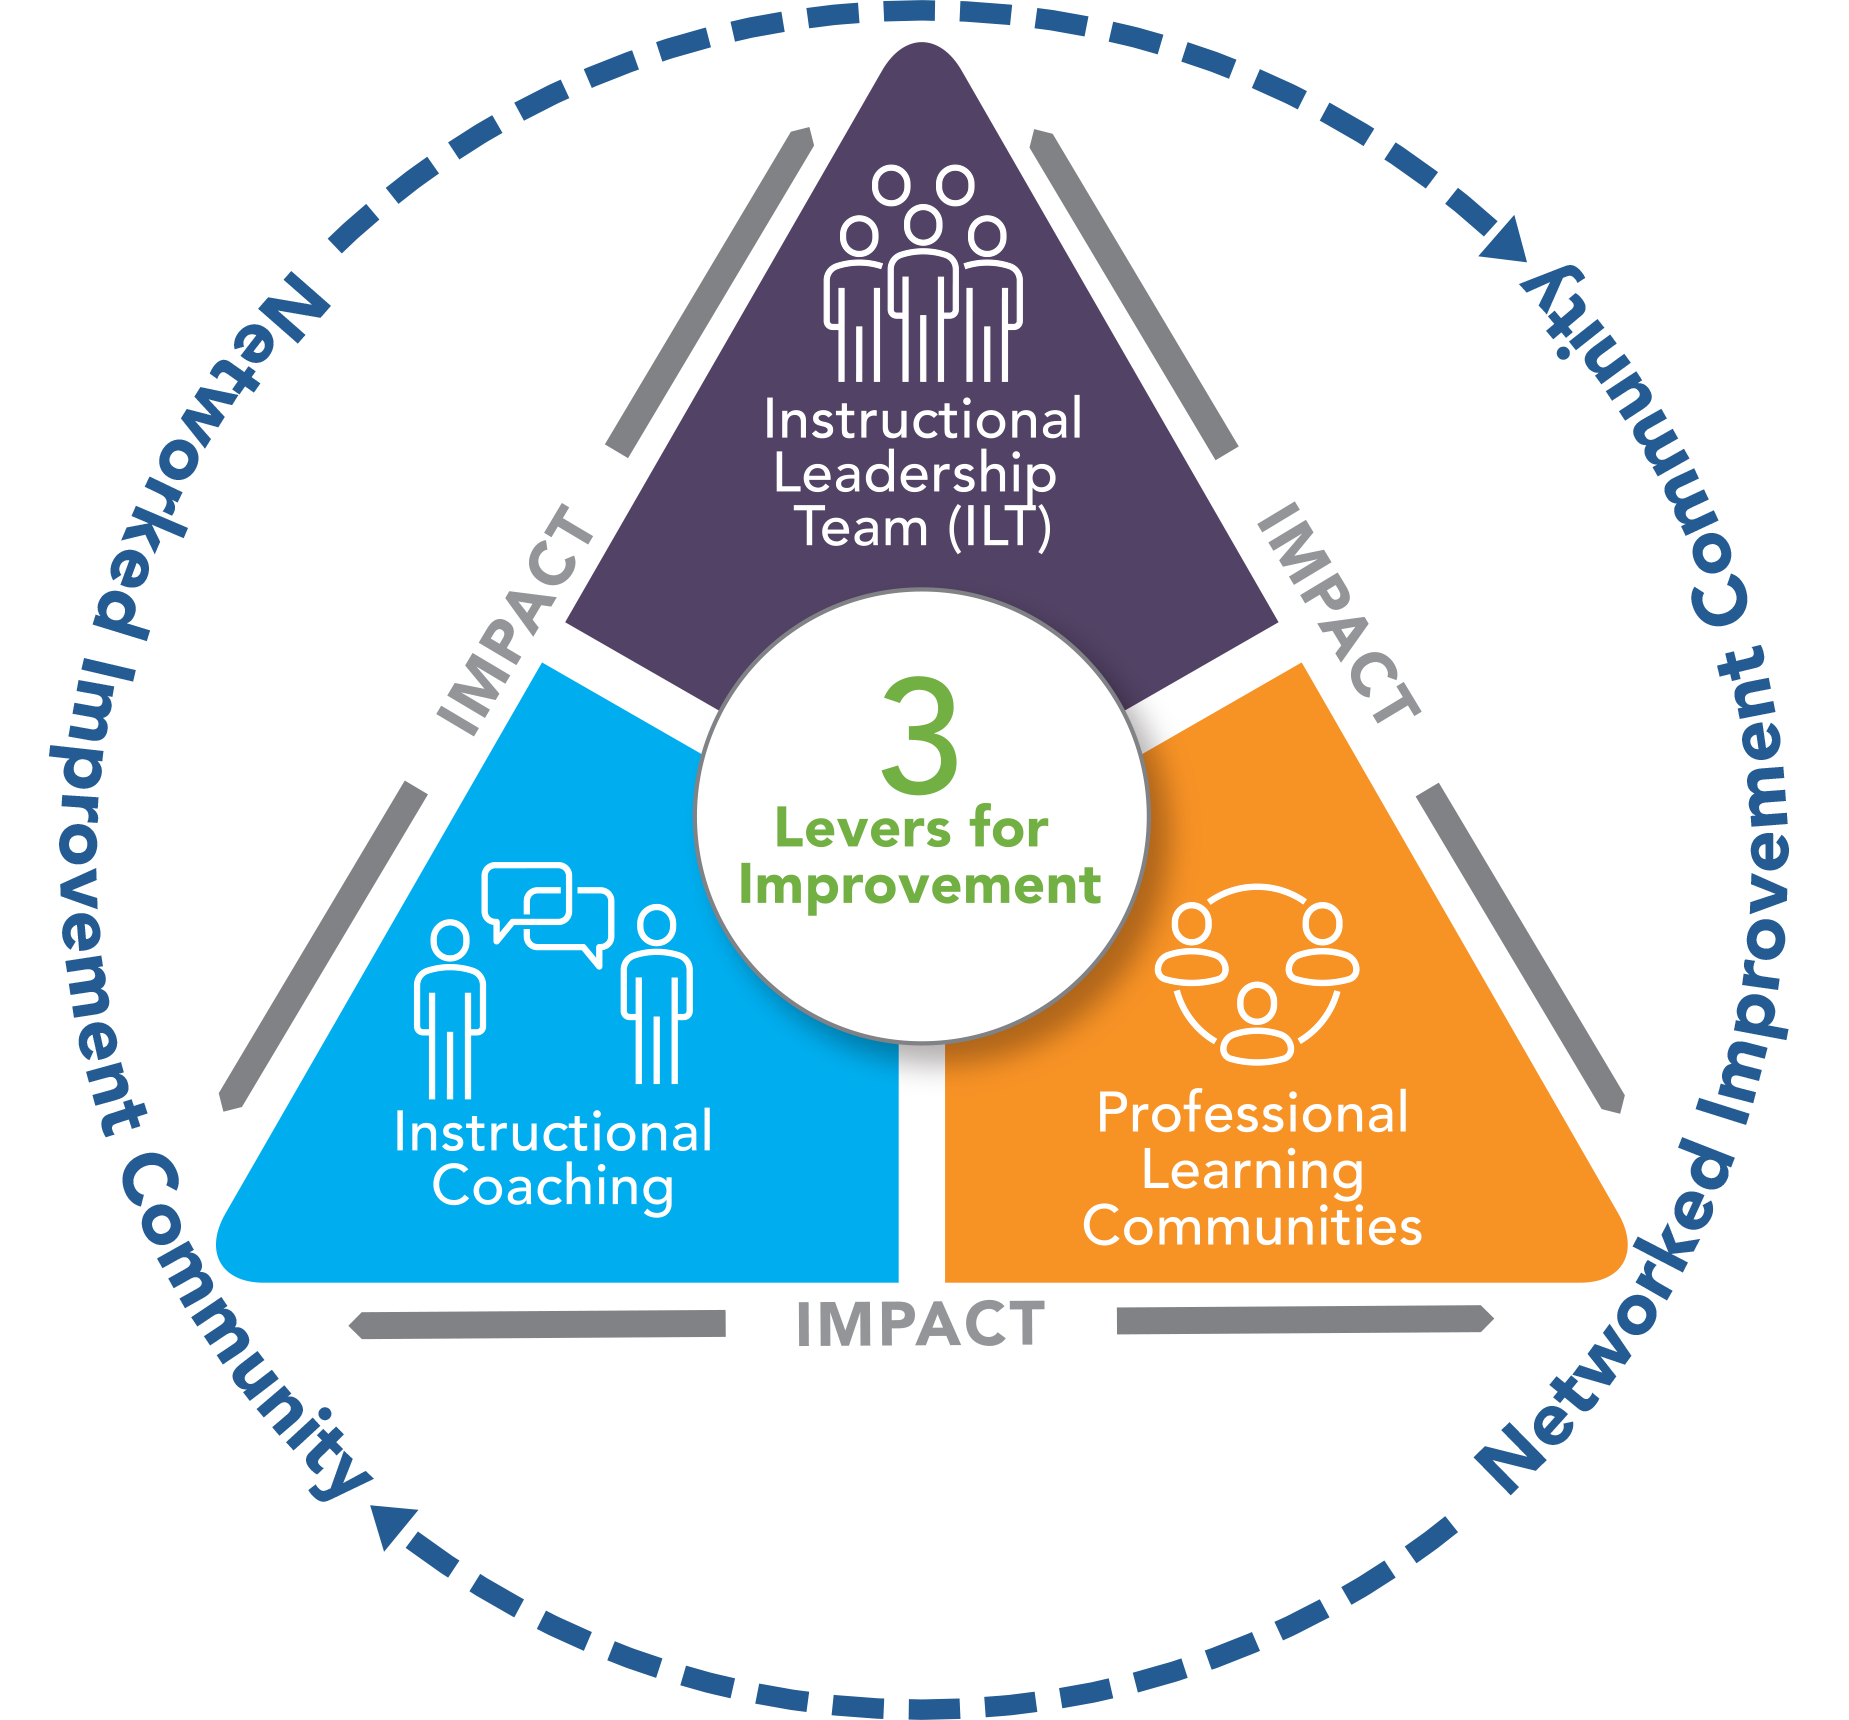 Three Levers for School Improvement in a Networked Improvement Community